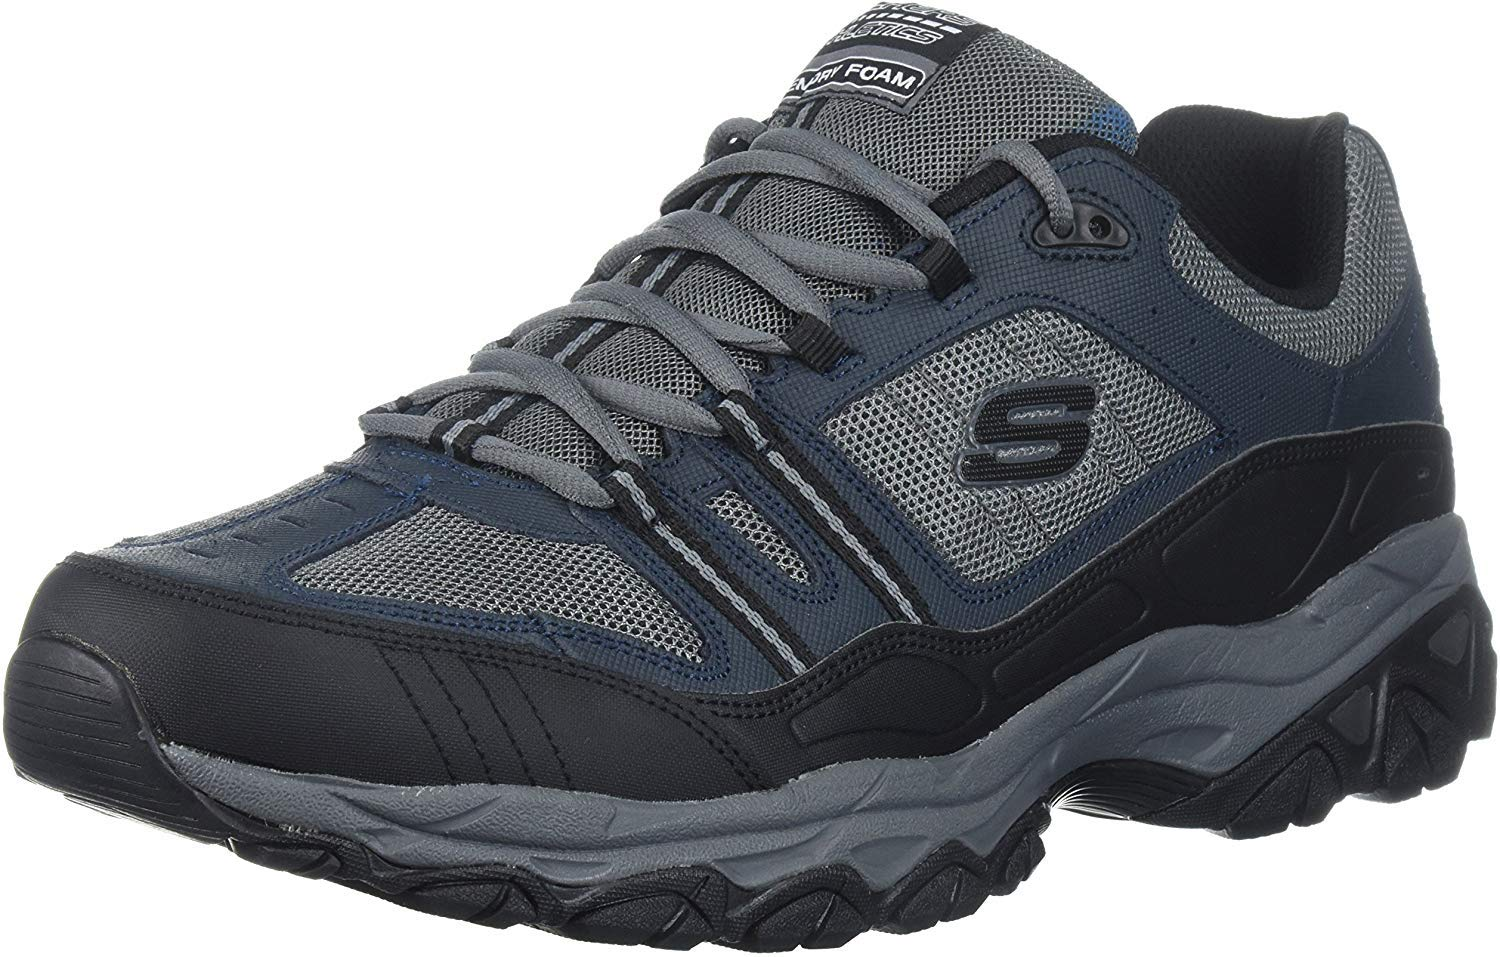 Skechers Sport Men's Afterburn Strike Memory Foam Lace-Up Sneaker,Navy/Gray,11.5 M US